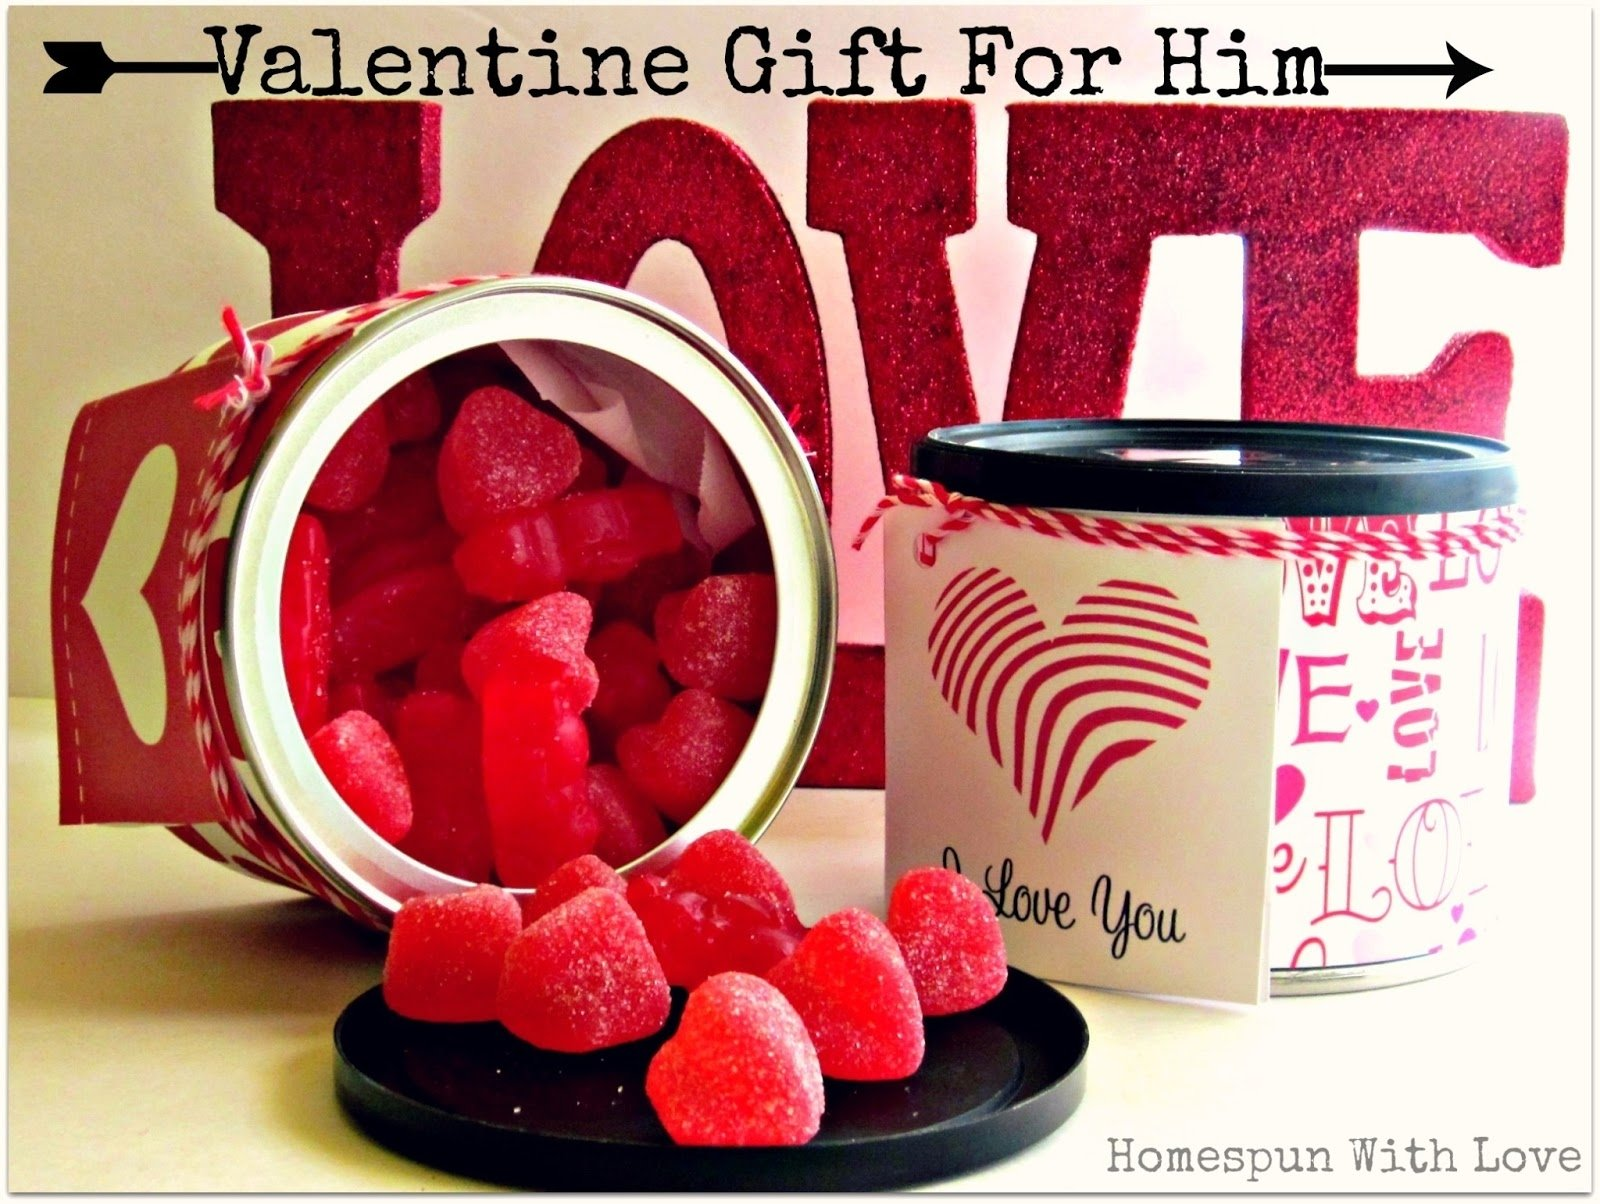 5 romantic valentines day gift ideas for him – ezyshine